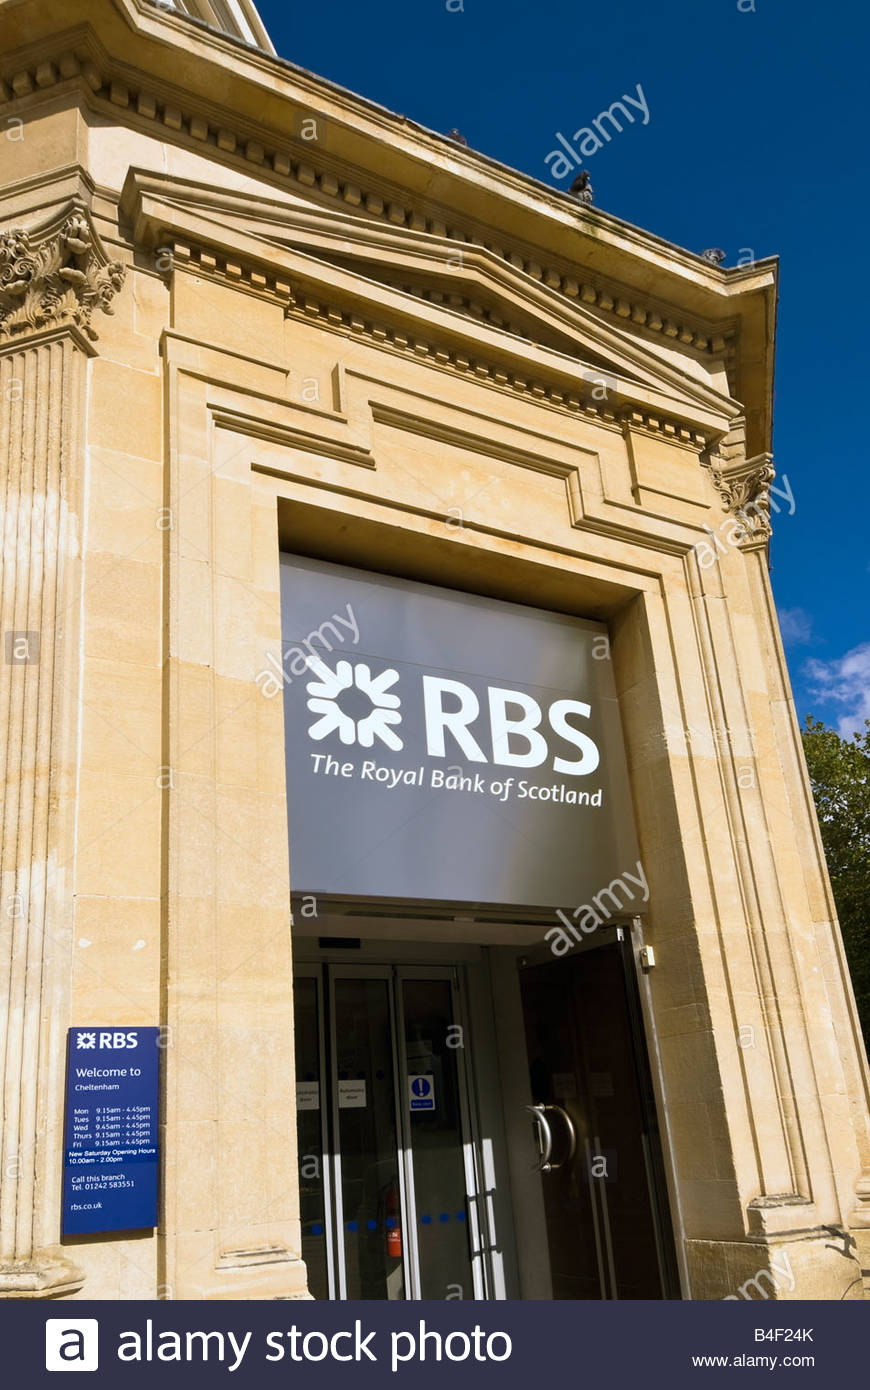 RBS Royal Bank of Scotland. RBS bank branch in Cheltenham, UK. - Stock Image